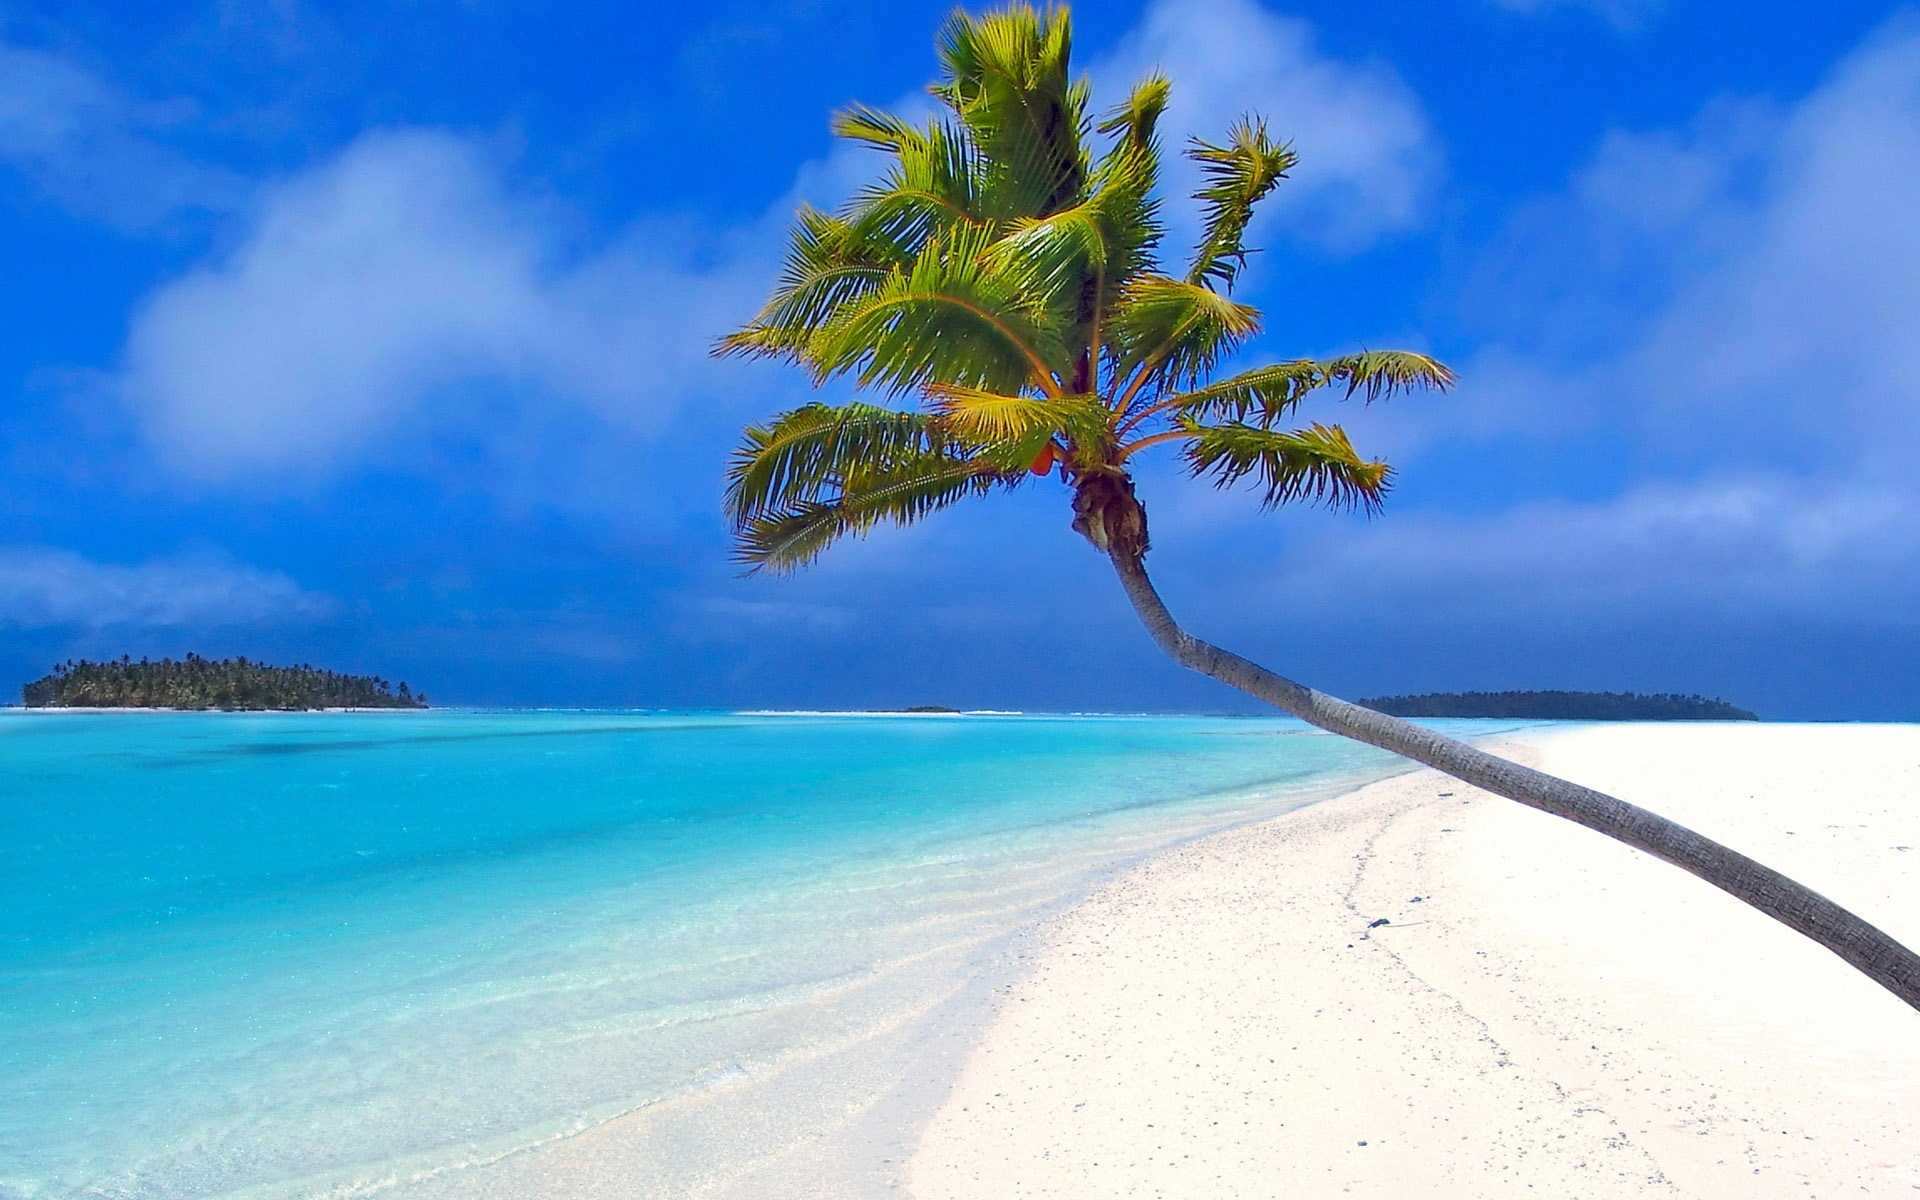 Hd Tropical Island Beach Paradise Wallpapers And Backgrounds: Wallpaper Beach By A Coconut Tree 1920x1200 HD Picture, Image